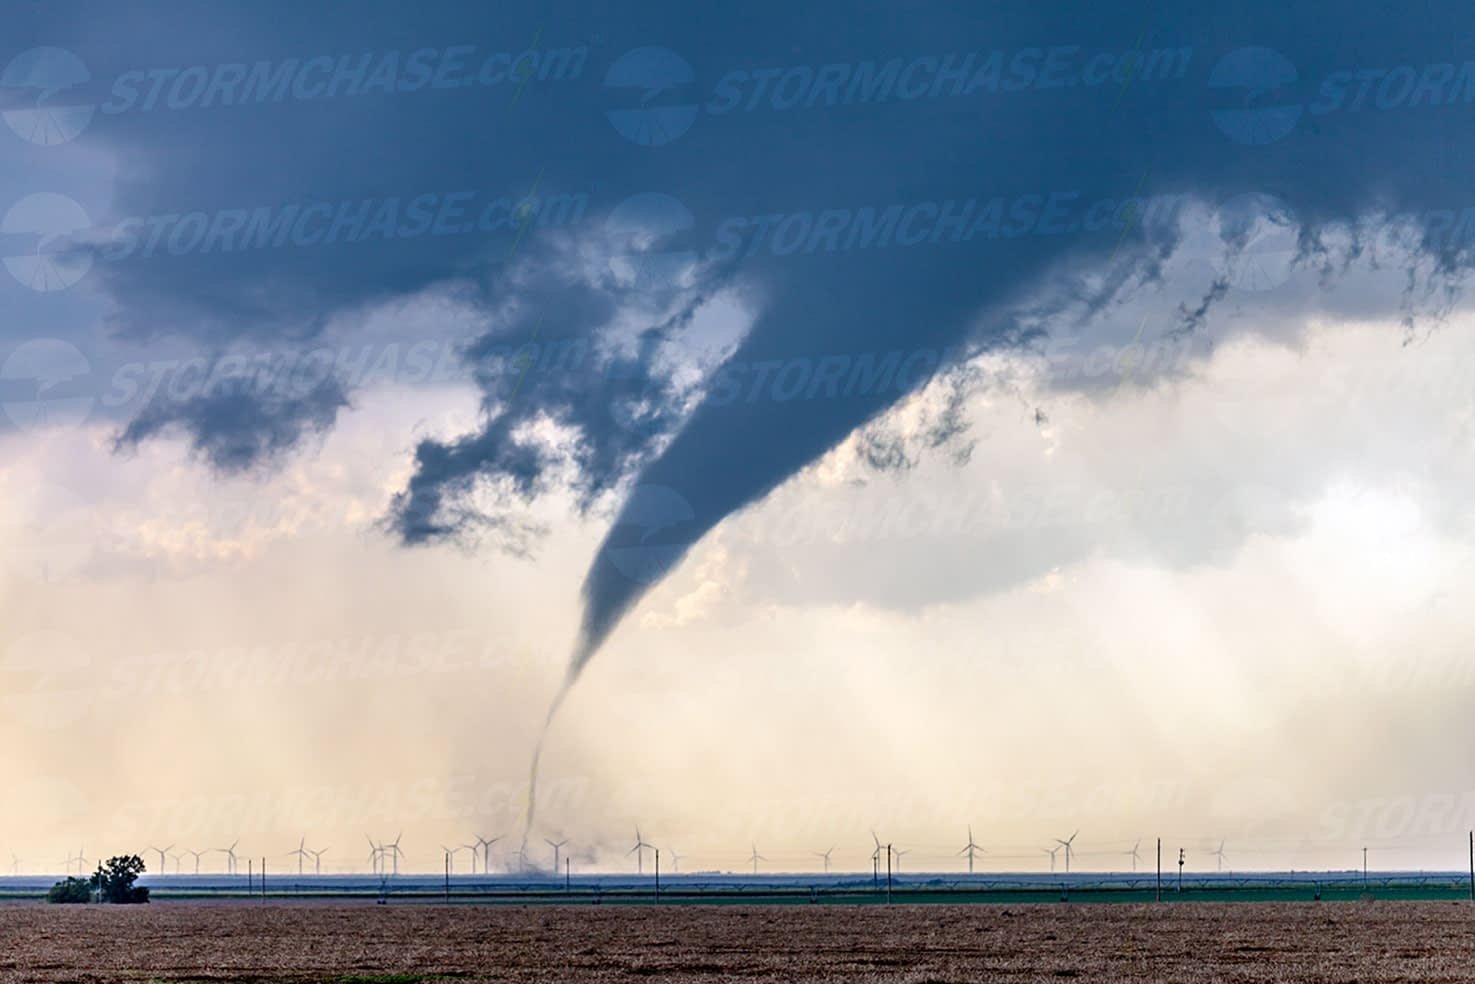 Tornado at wind farm